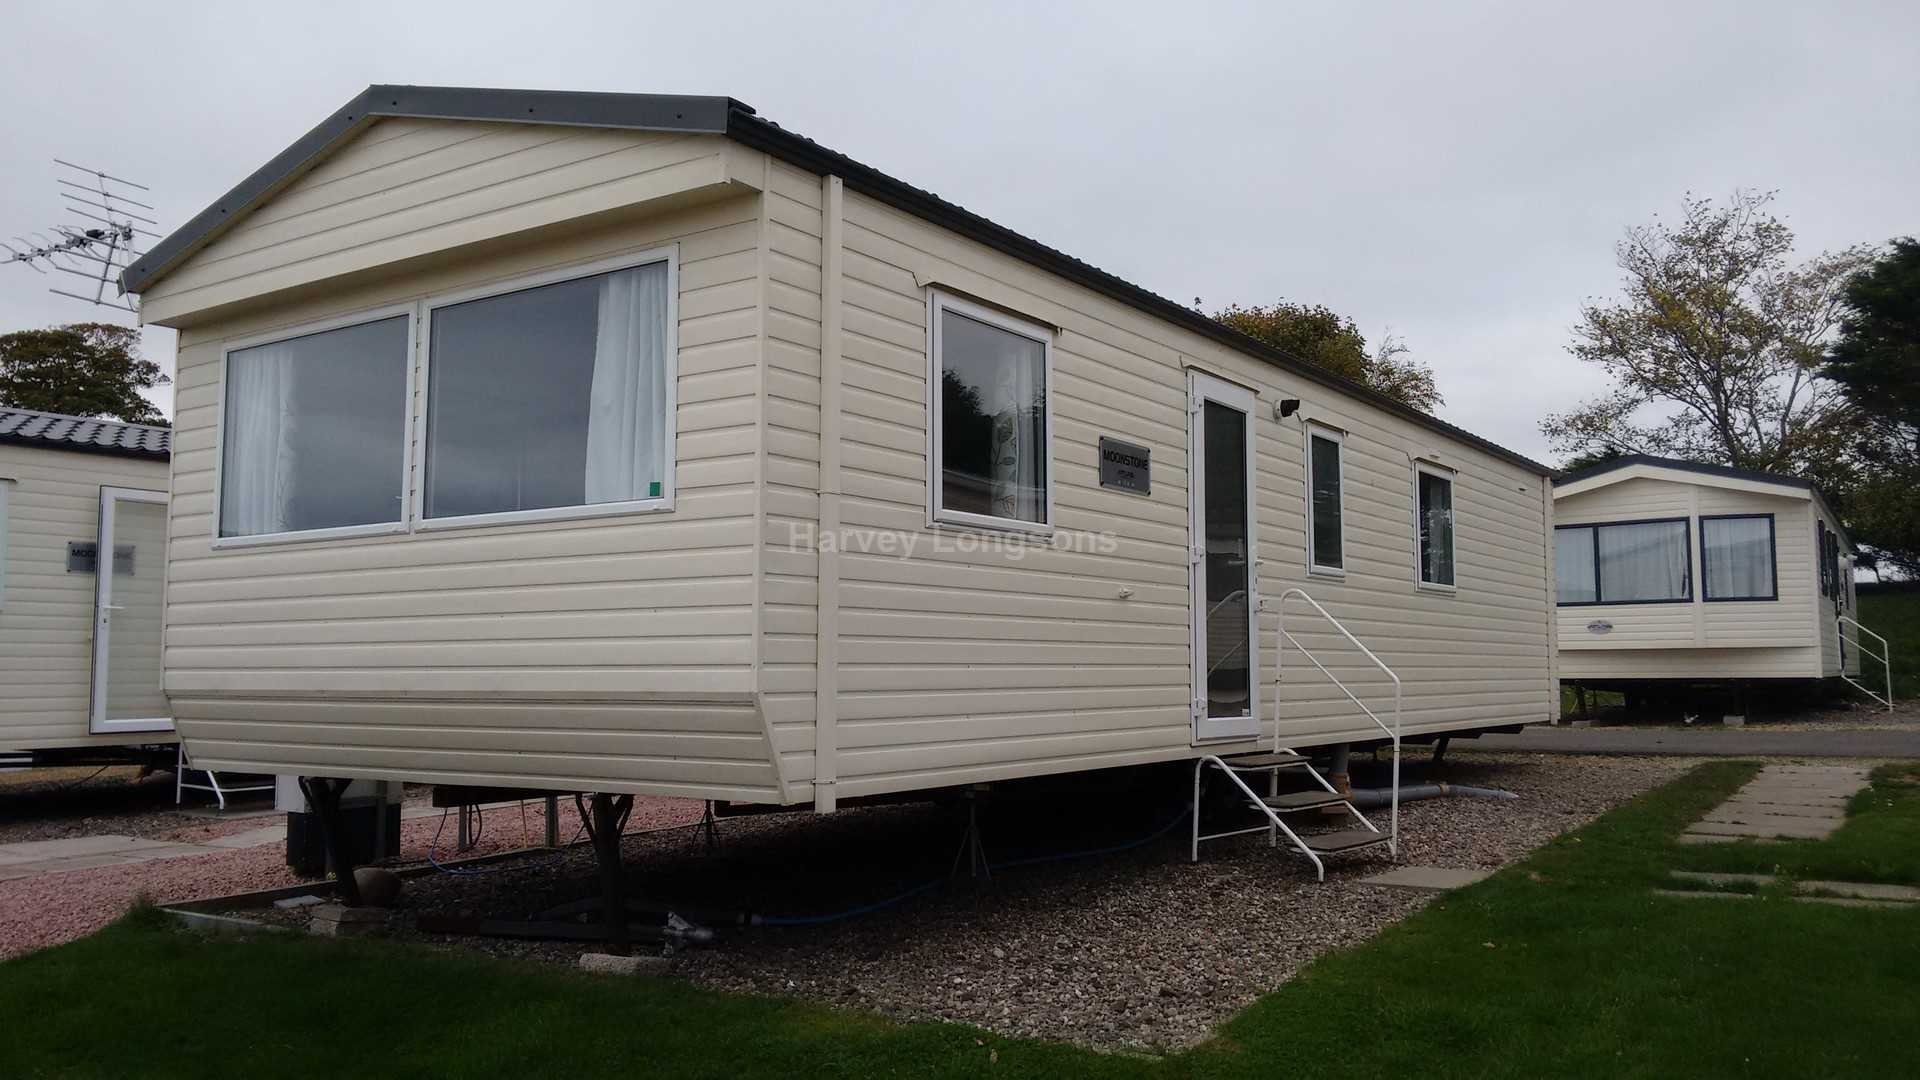 2 Bedroom Mobile Home For Sale St Cyrus Park St Cyrus